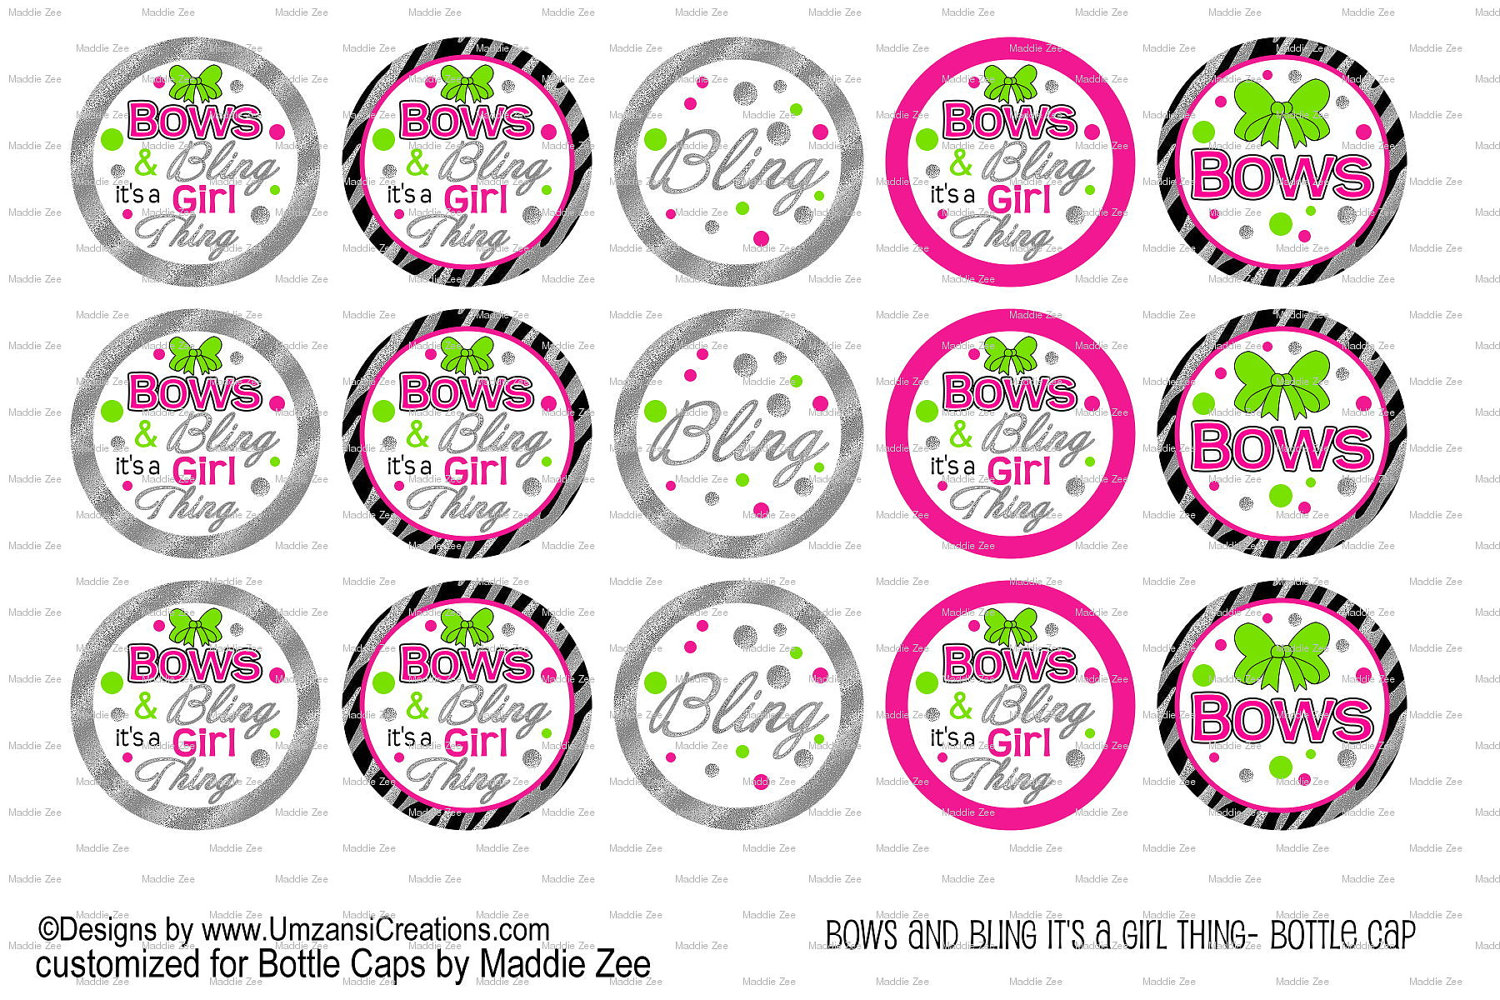 Bottle caps by maddie zee 15 bows and bling its a girl thing 15 bows and bling its a girl thing digital download for 1 bottle caps pronofoot35fo Image collections